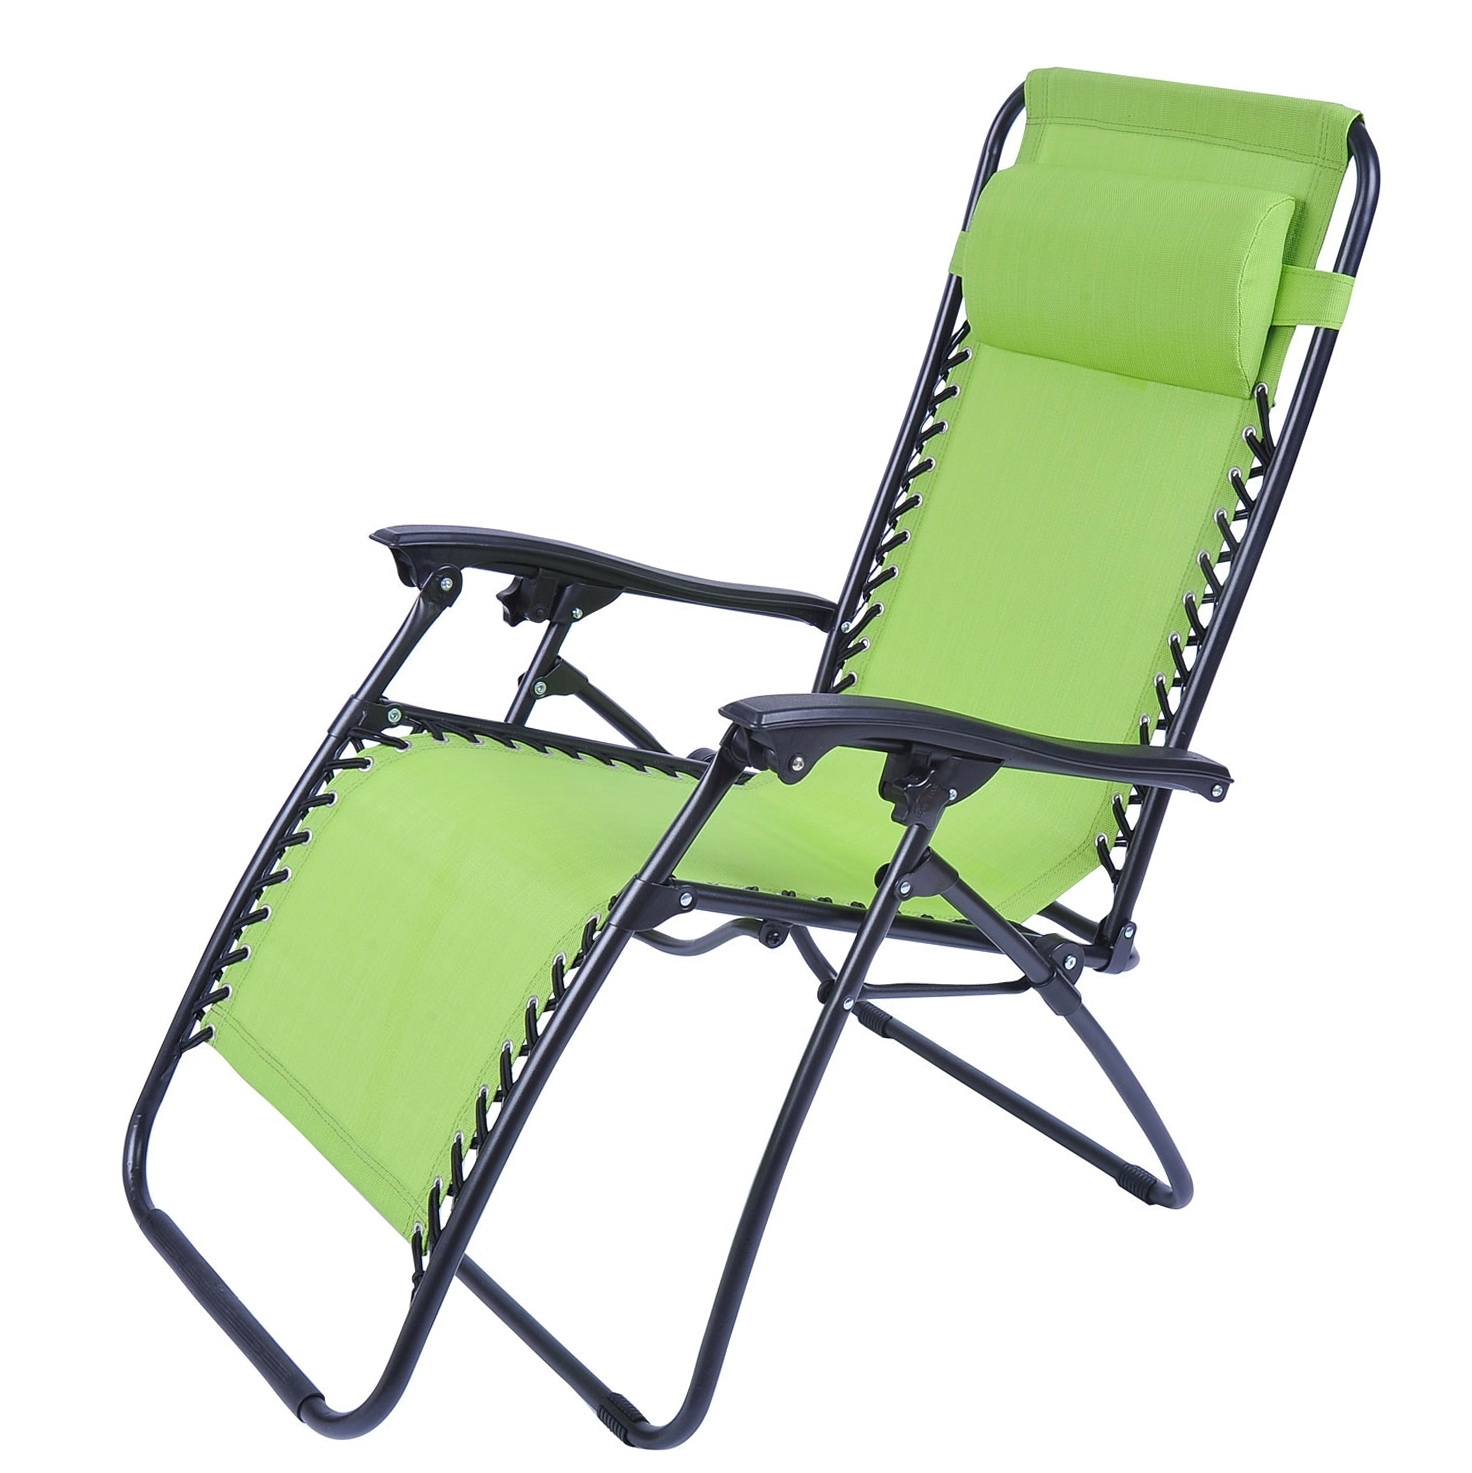 Fashionable Foldable Chaise Lounge Outdoor Chairs In Folding Chaise Lounge Chair Patio Outdoor Pool Beach Lawn Recliner (View 3 of 15)